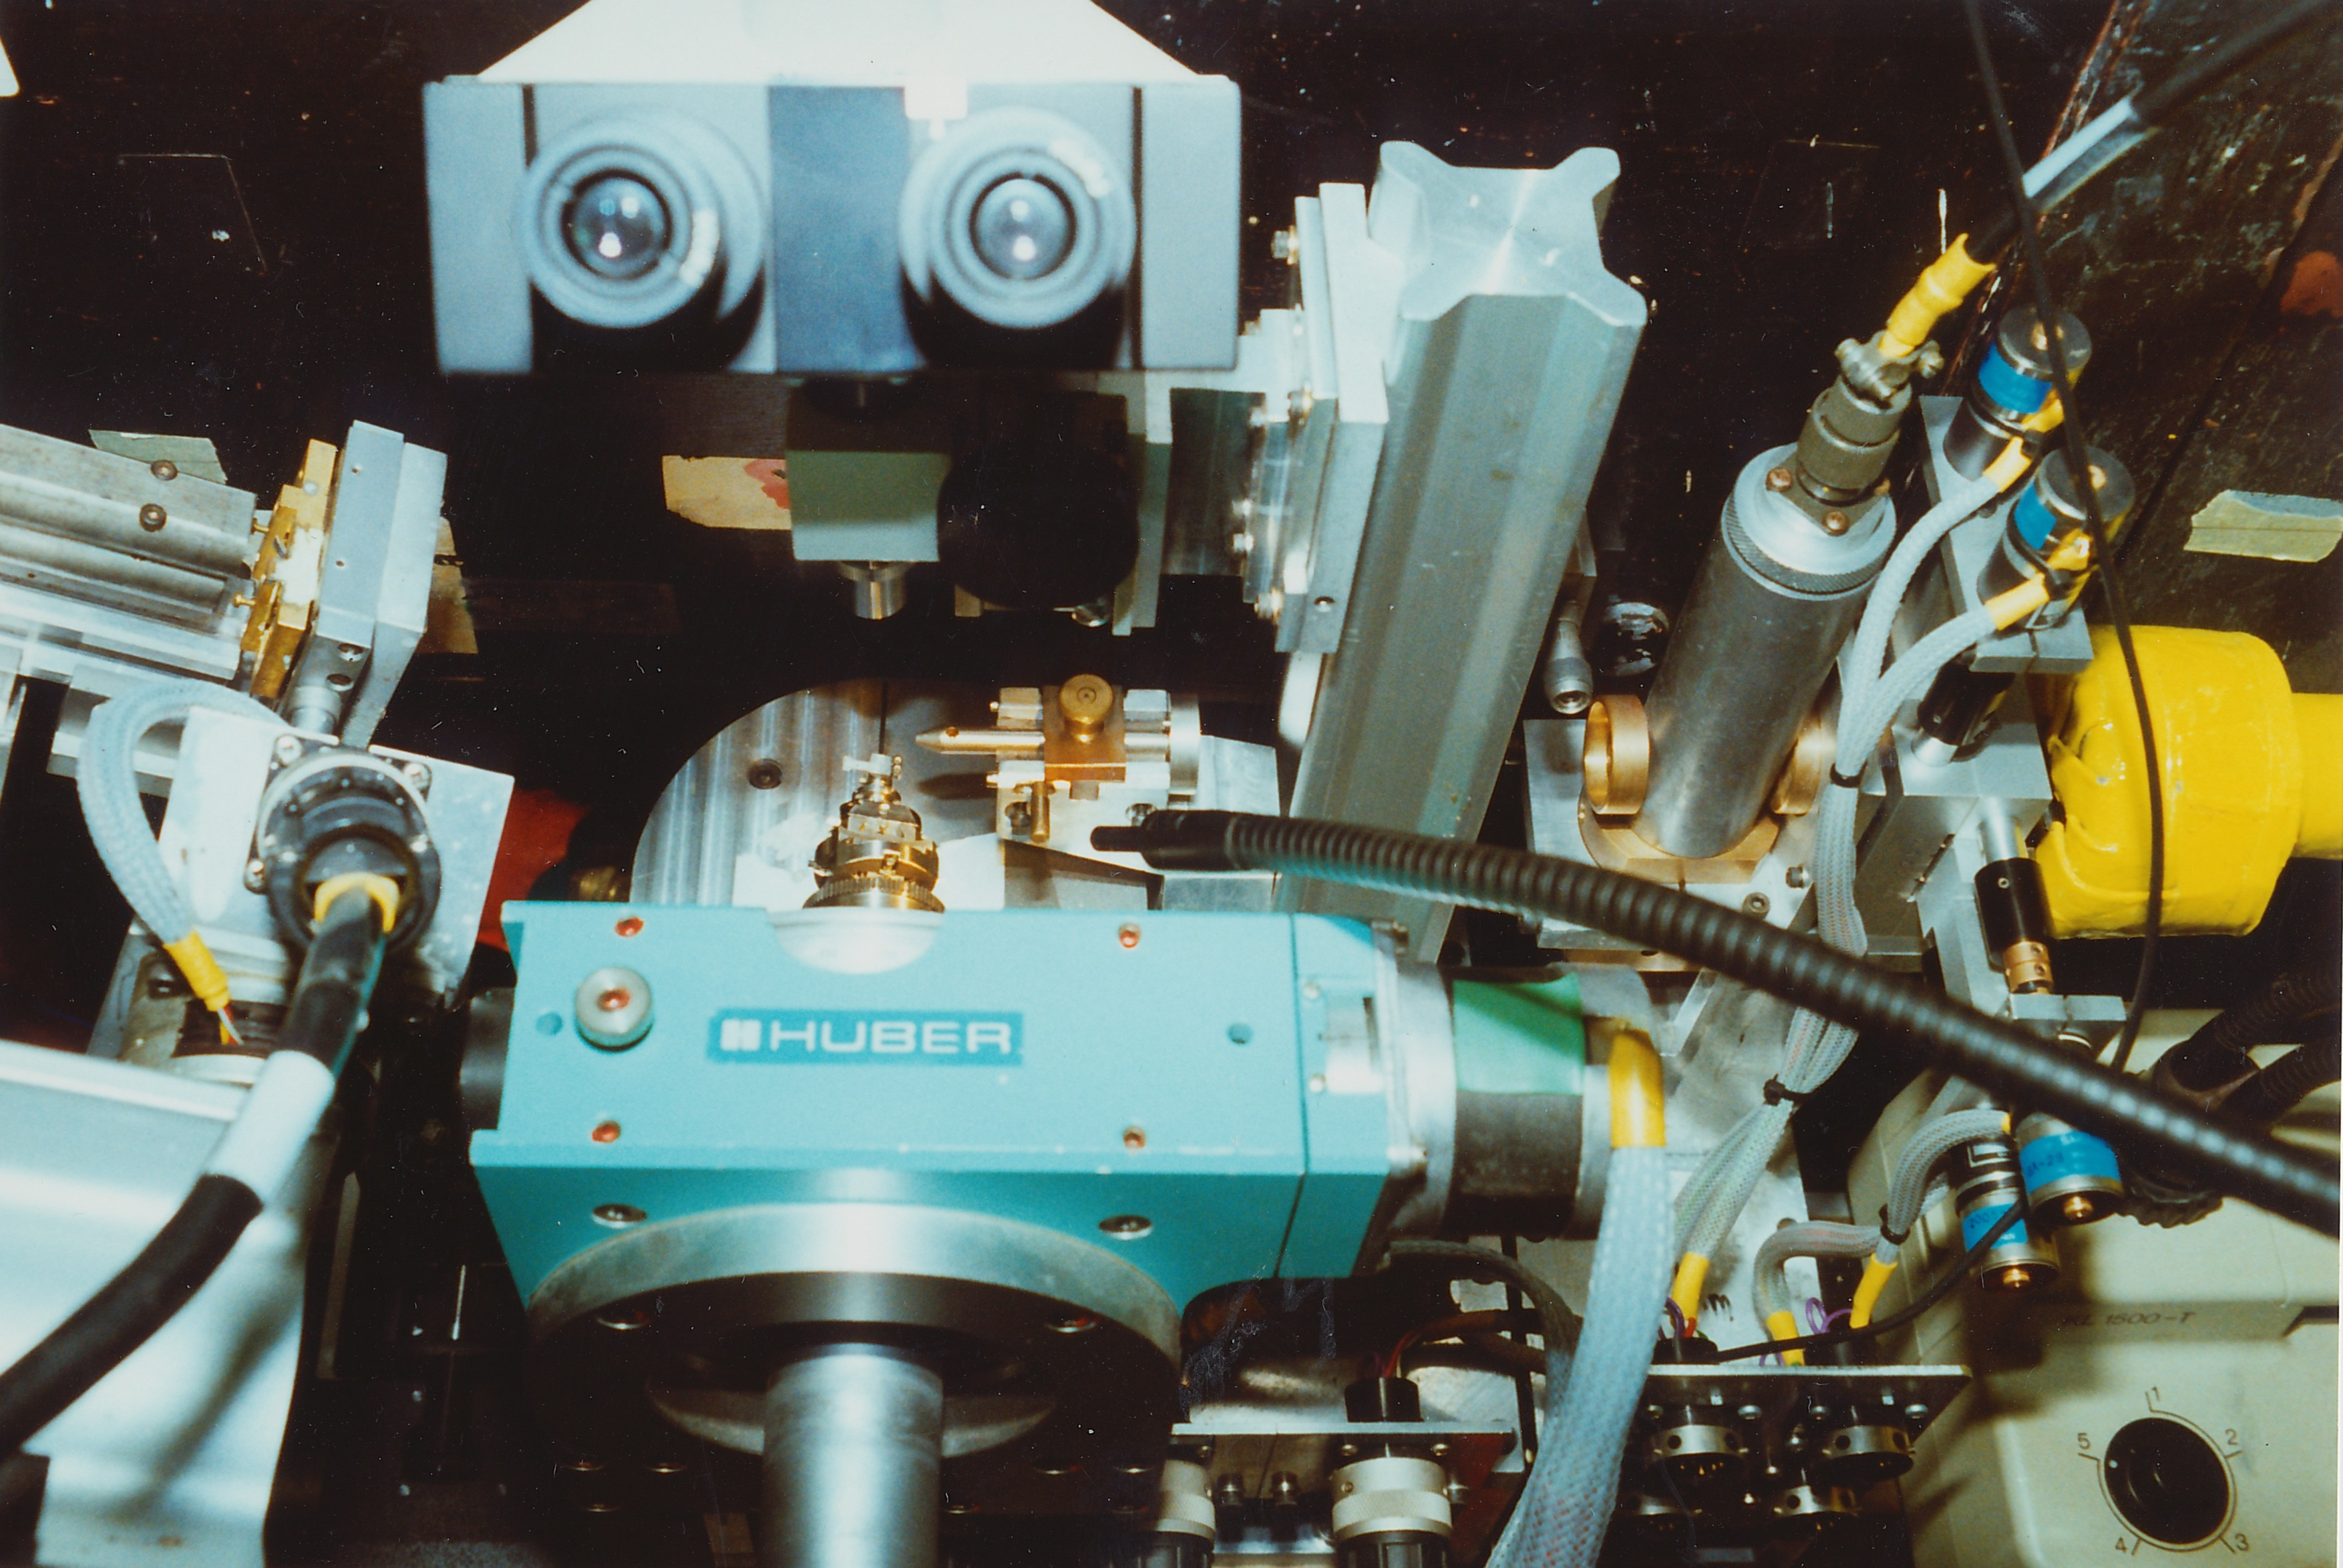 042Dares050.jpg - Looking down on our sample (centre) mounted at station 9.7, Sept 1992